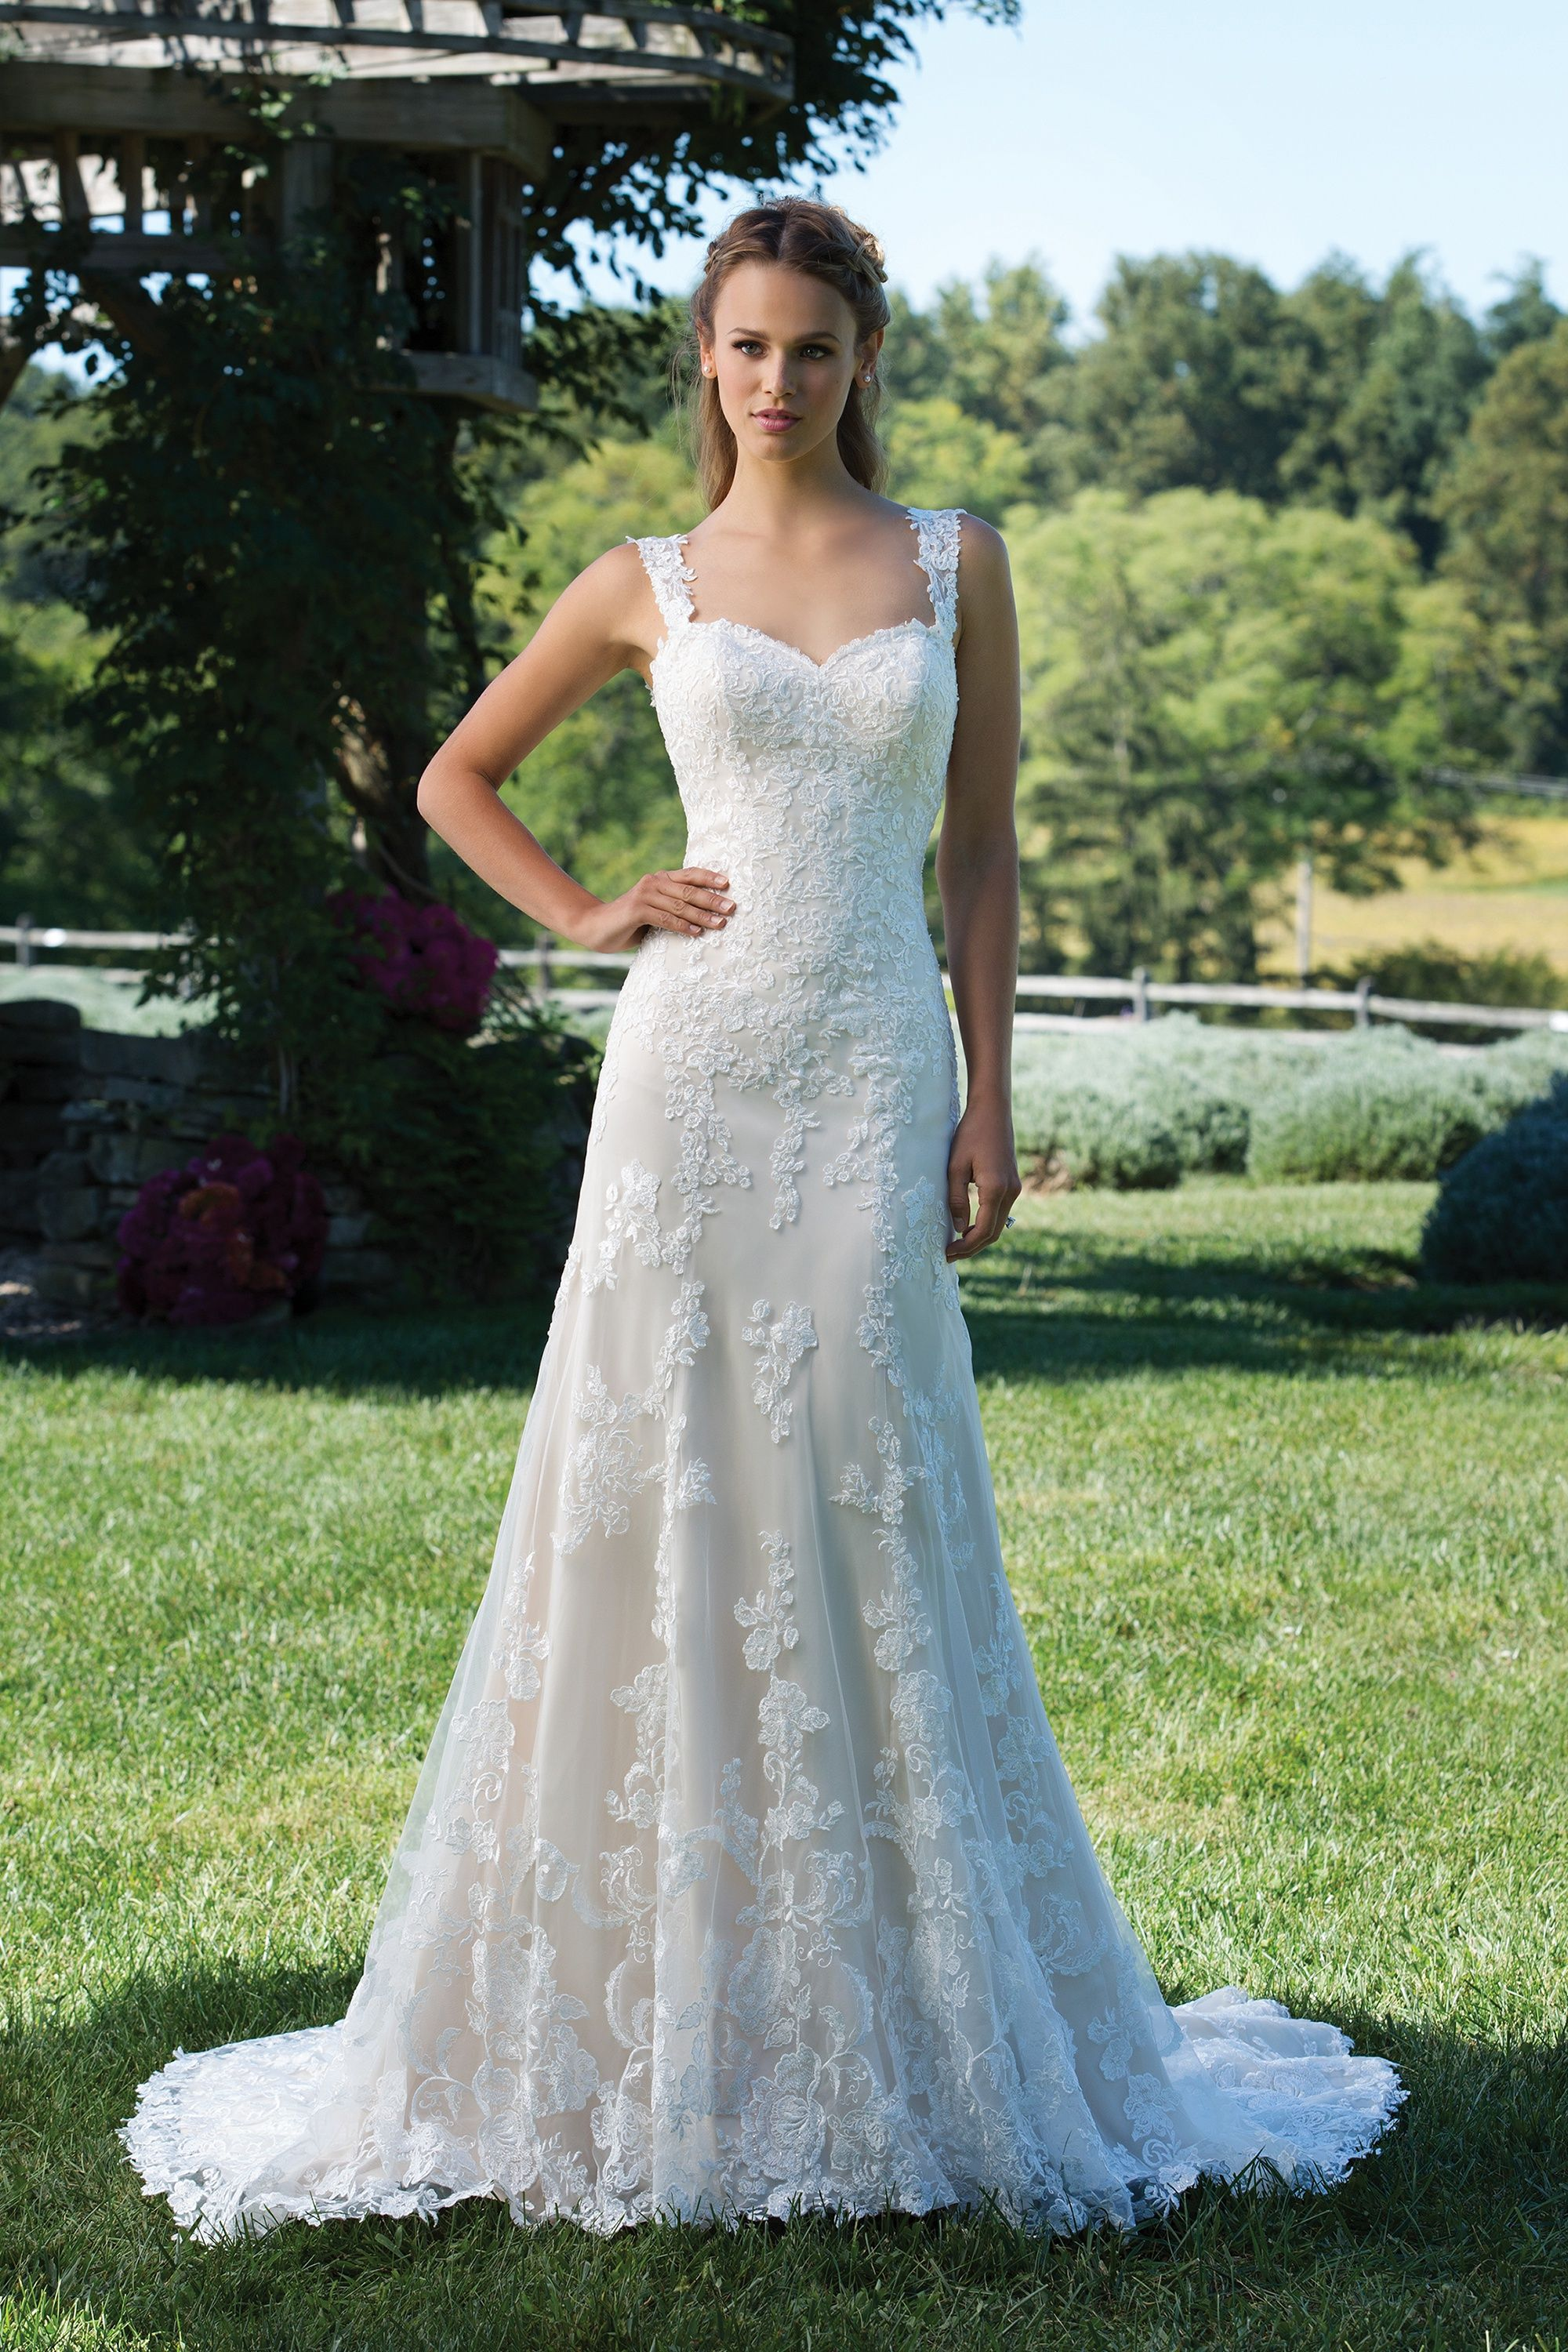 Dresses for wedding reception for bride  Romantic Fit and Flare Gown with Sequined Lace Appliqués  Kld